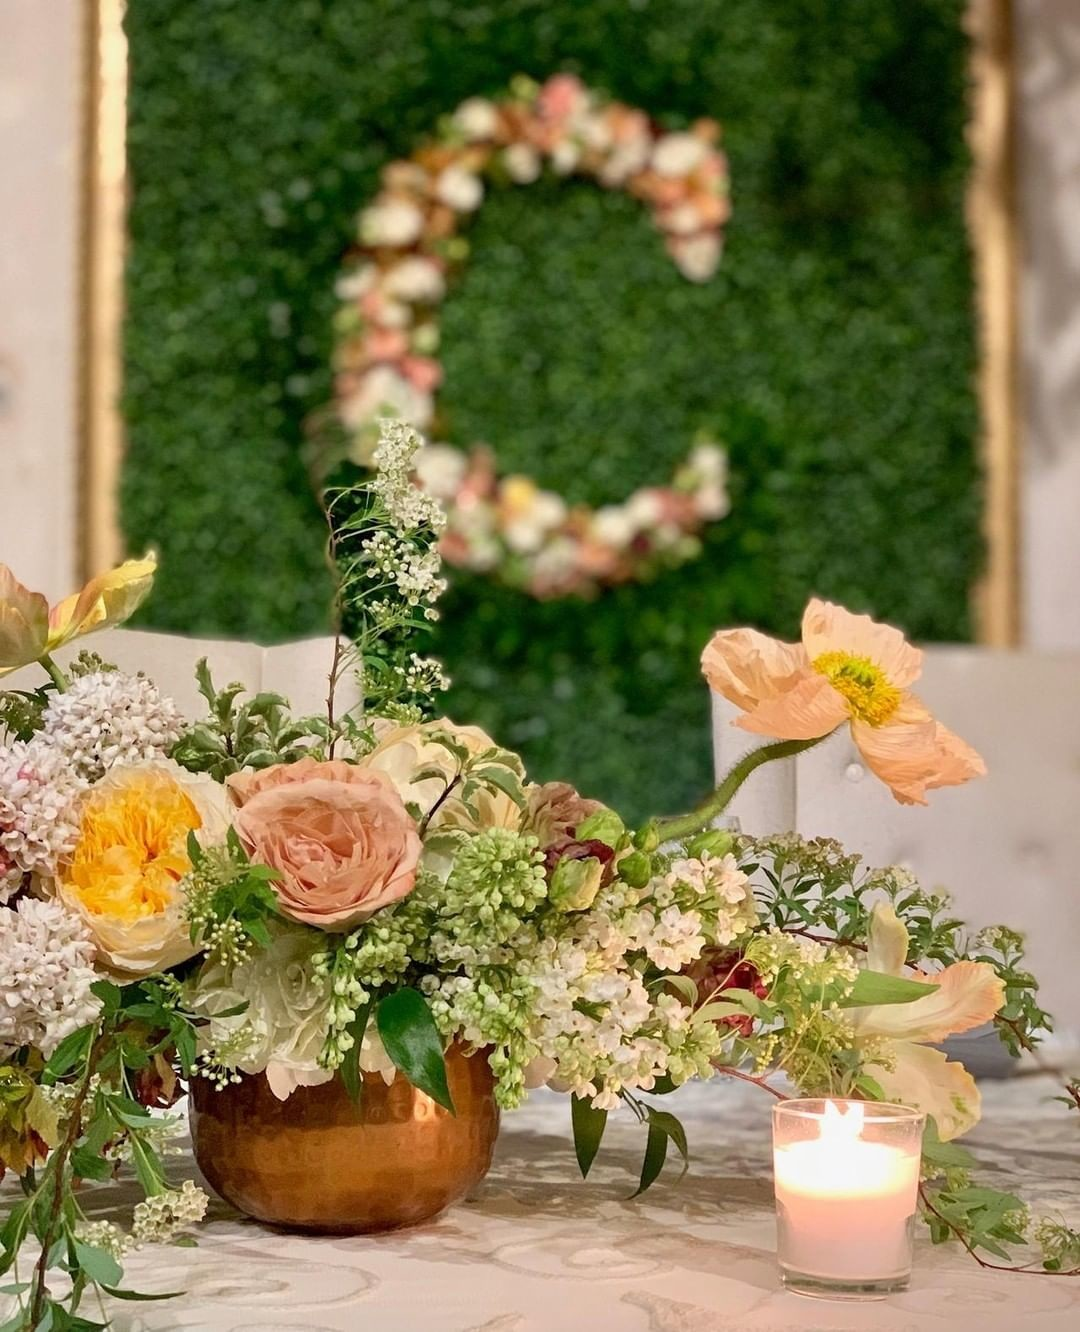 We are still in love with the colors from this early April wedding a couple weekends ago! 😍⁣